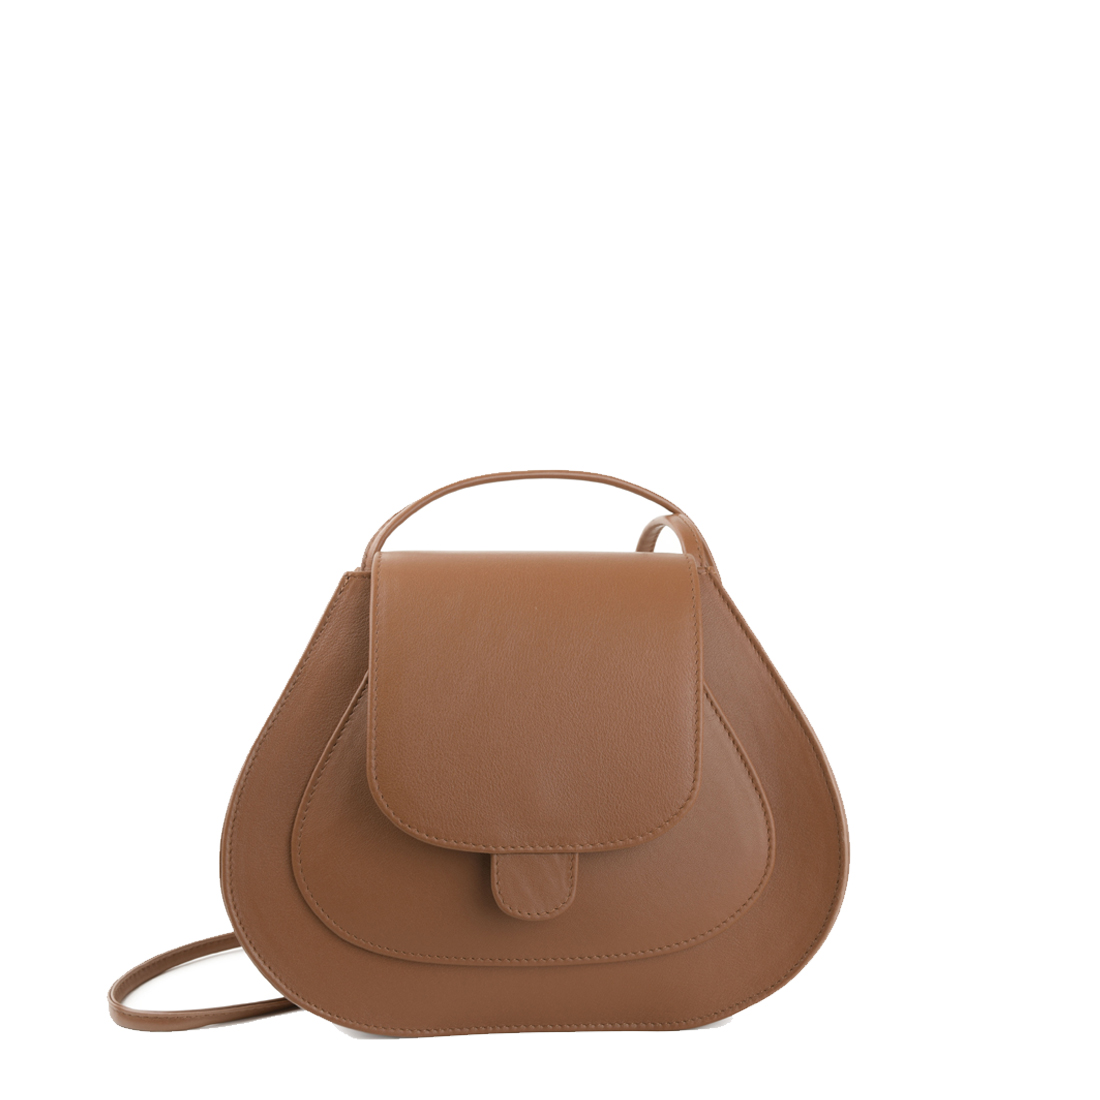 Tan Polly Leather Across Body Bag